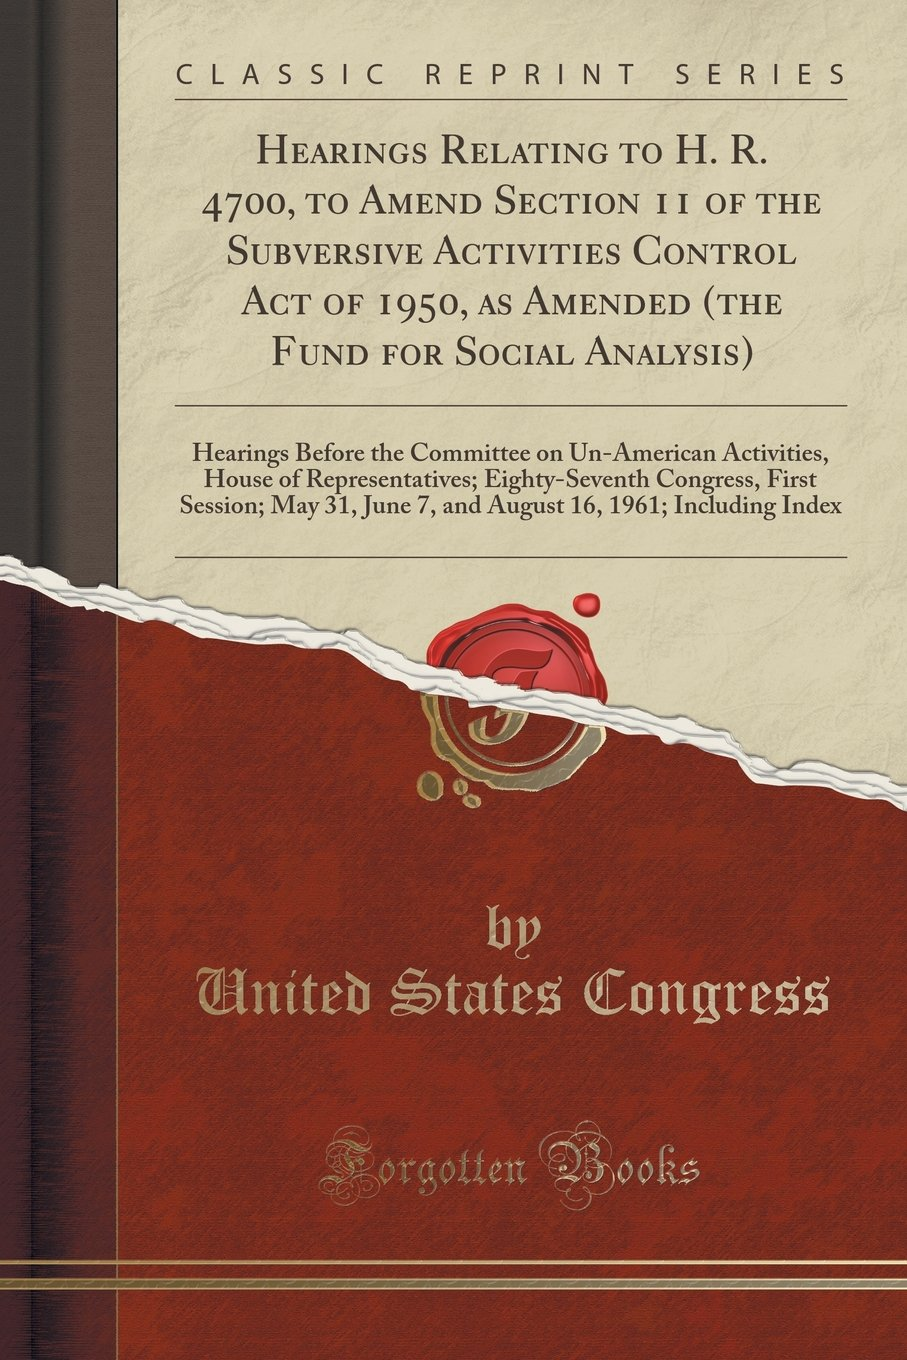 Download Hearings Relating to H. R. 4700, to Amend Section 11 of the Subversive Activities Control Act of 1950, as Amended (the Fund for Social Analysis): ... Representatives; Eighty-Seventh Congress, F pdf epub